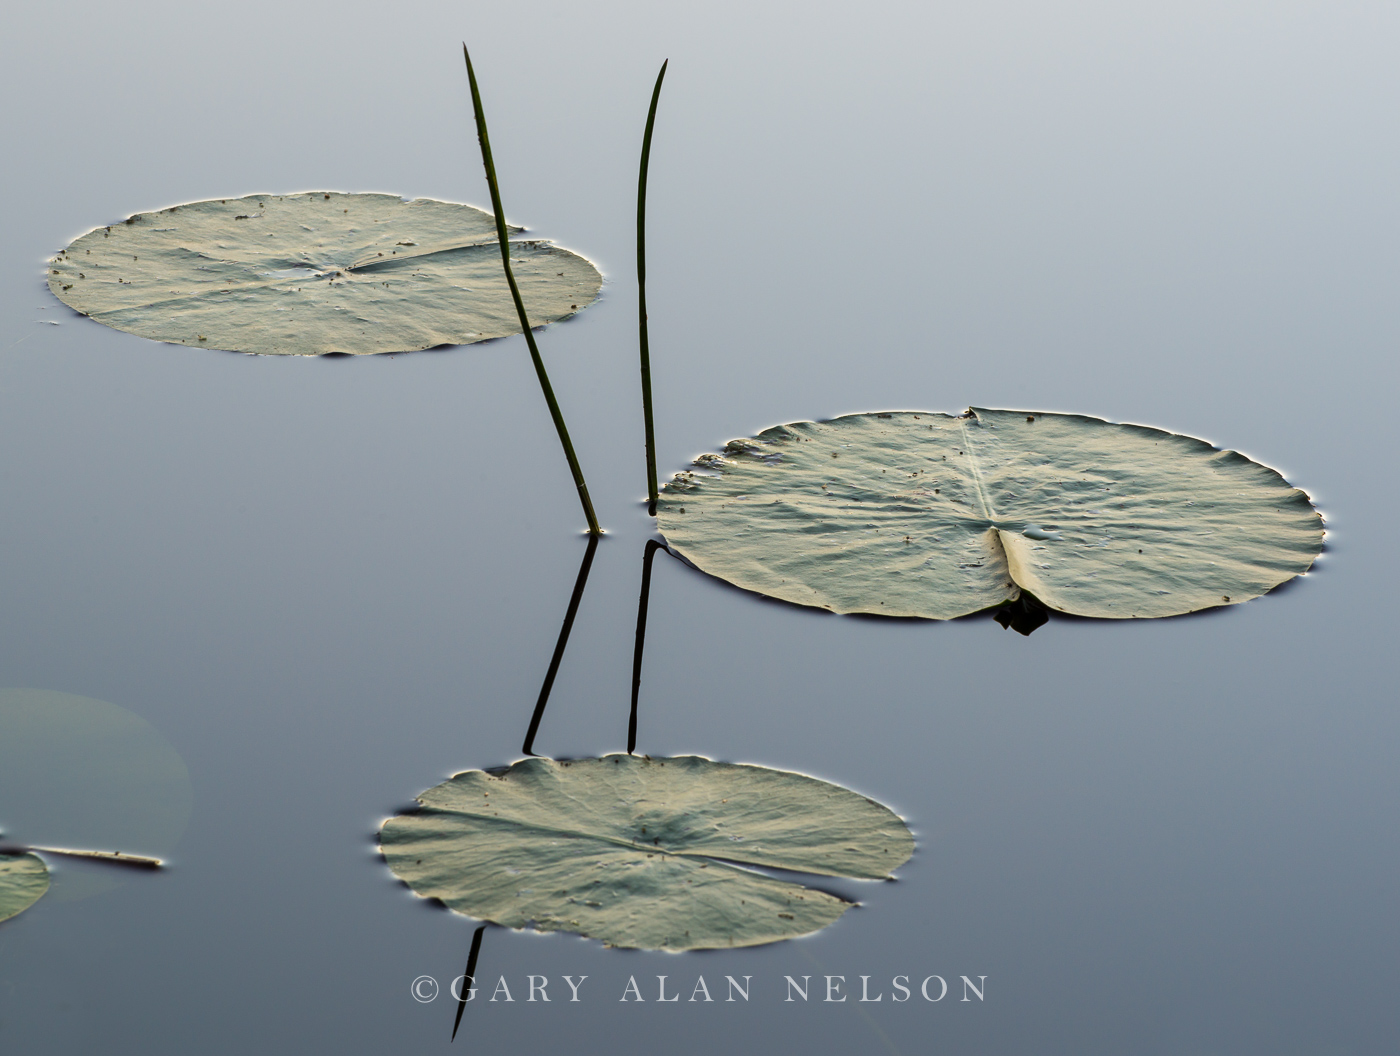 Allemansratt park,bulrushes,lily pads pads, photo